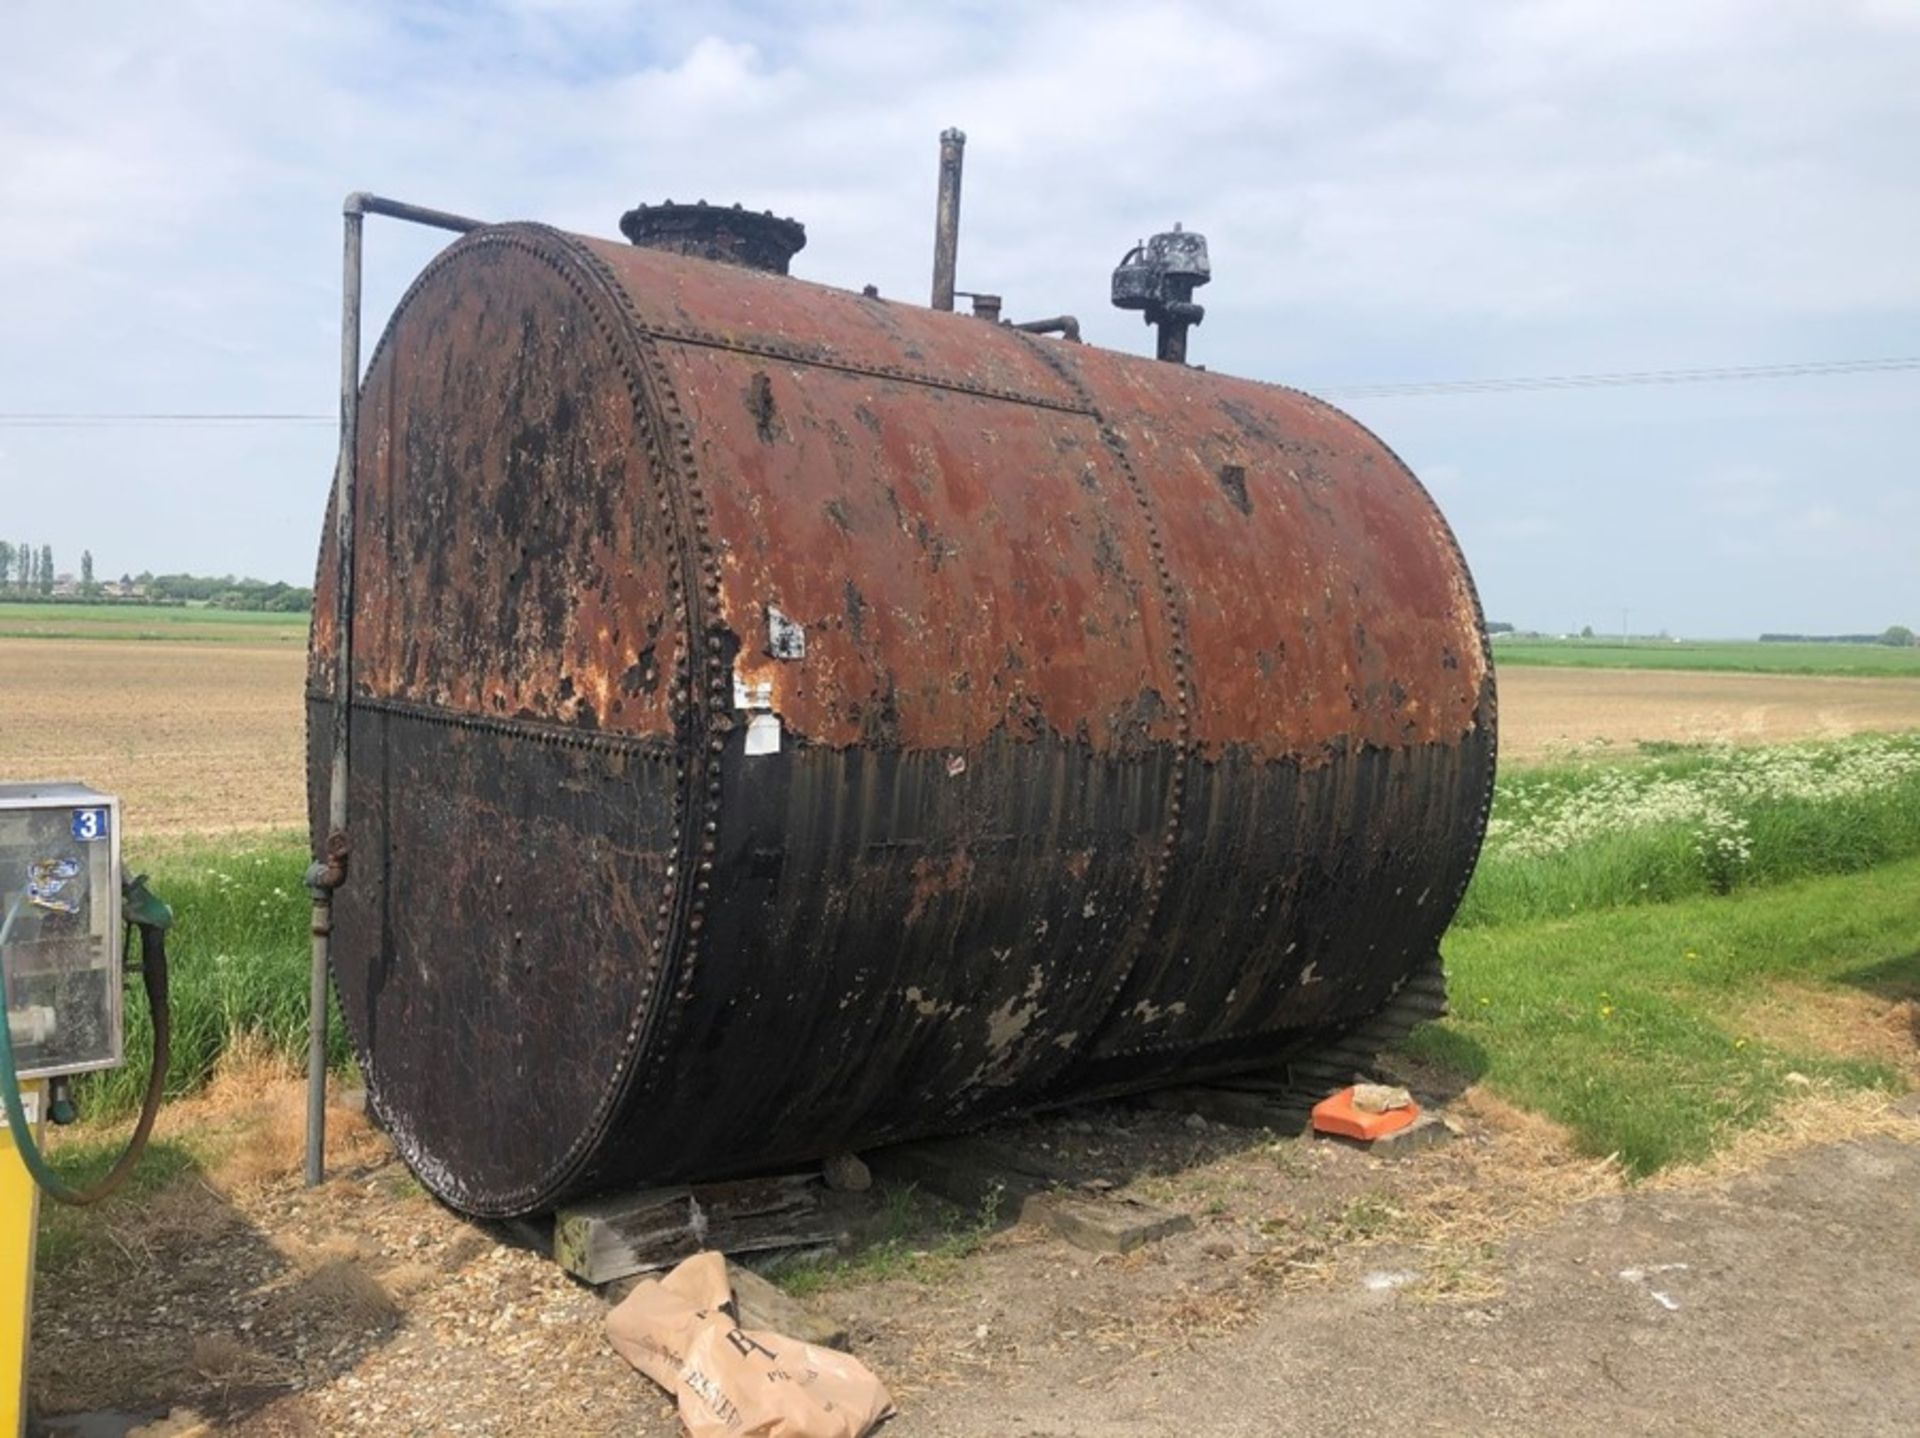 Cylindrical fuel tank